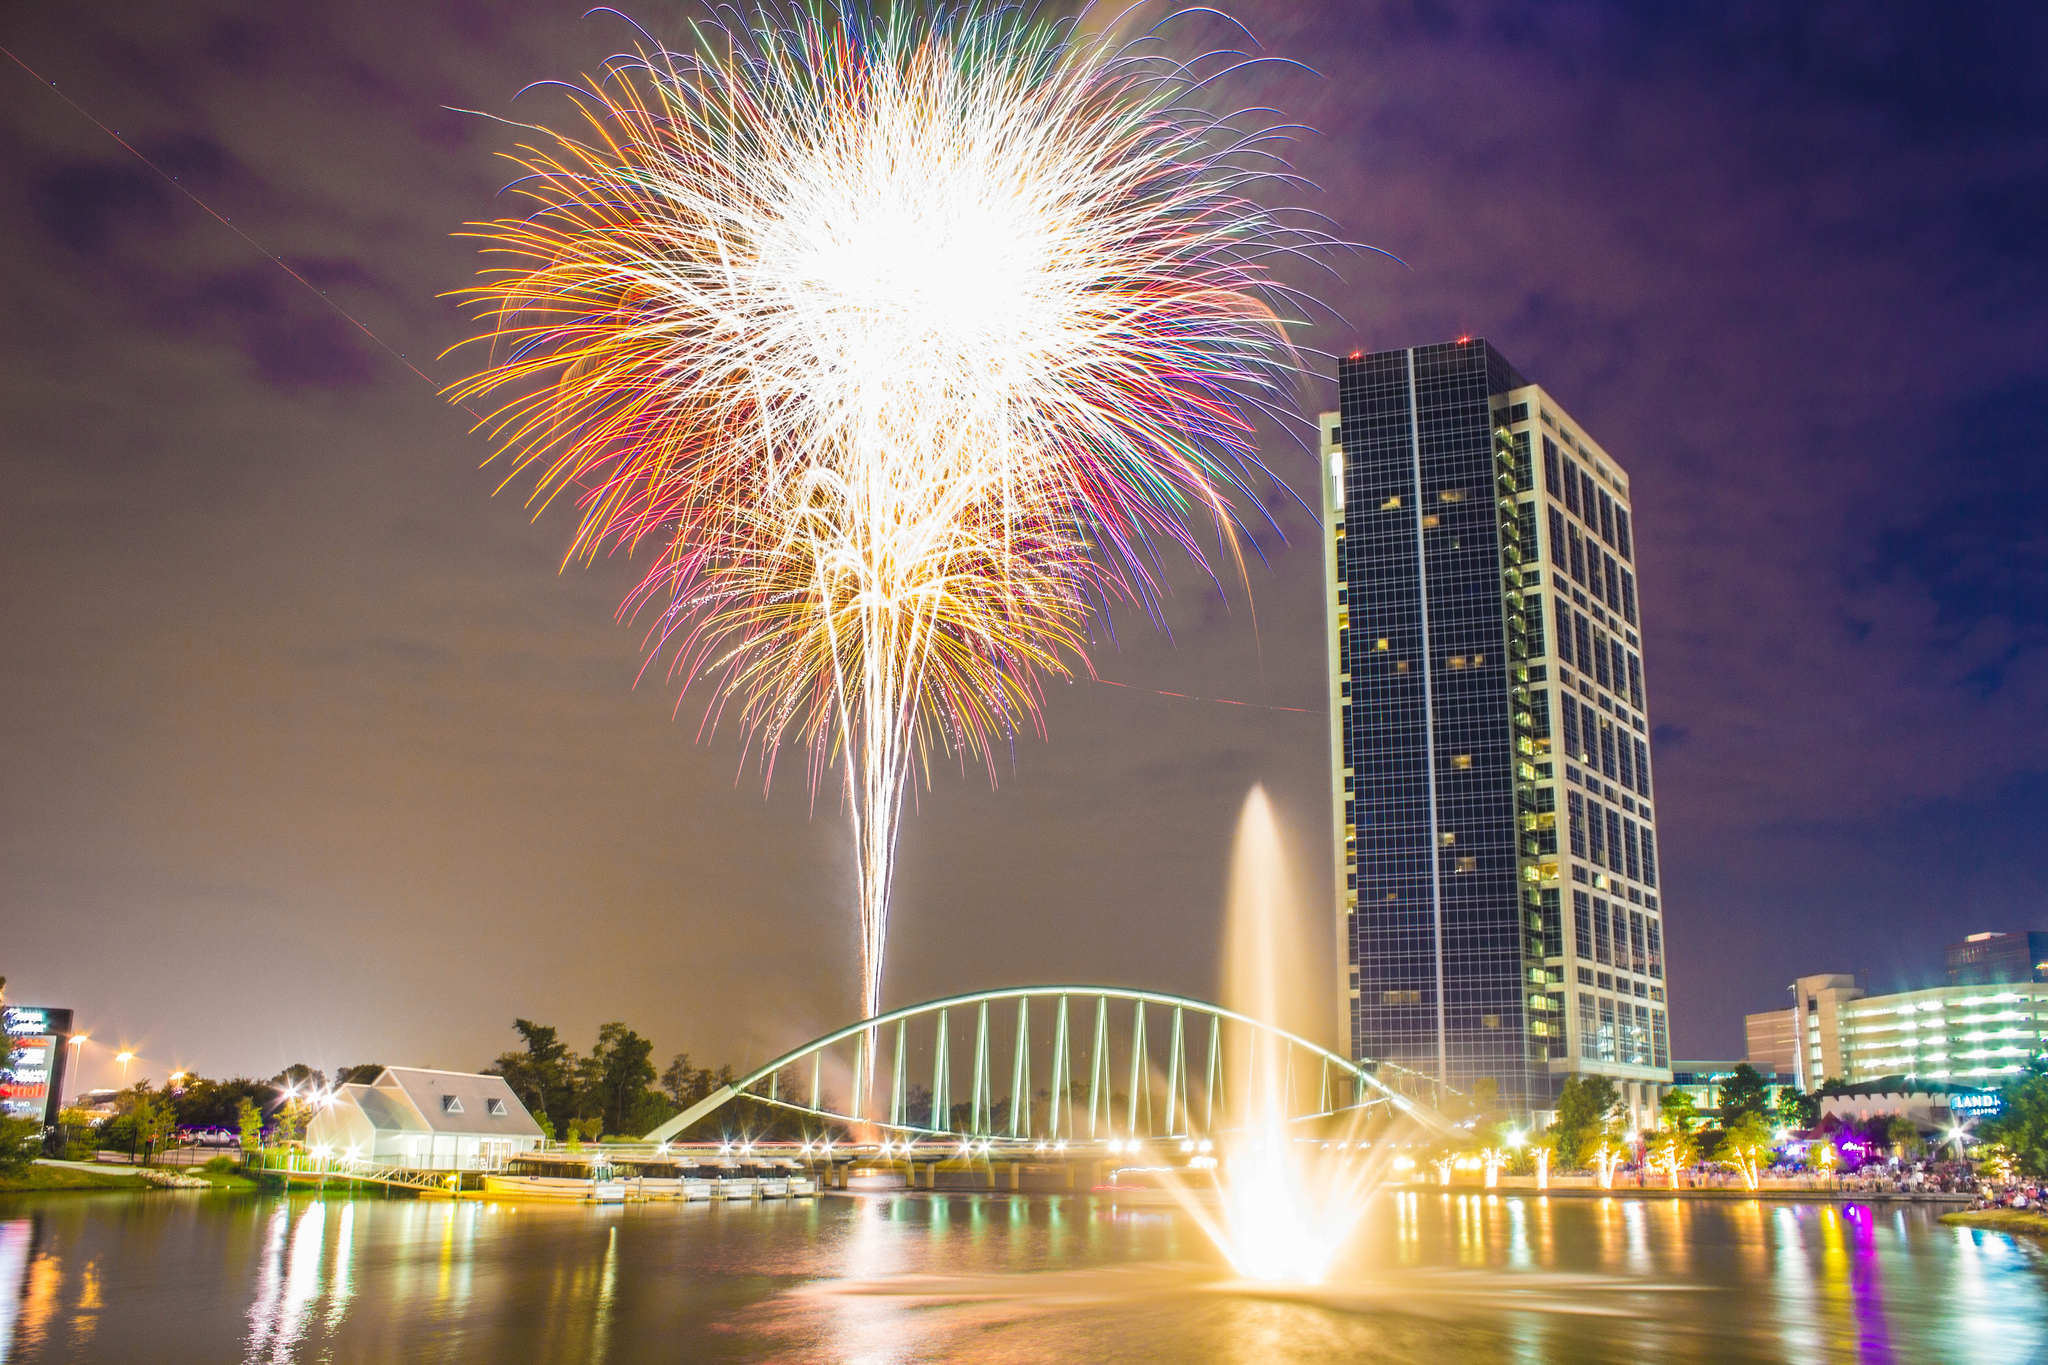 The Top 9 Fireworks Shows For July 4th In Texas